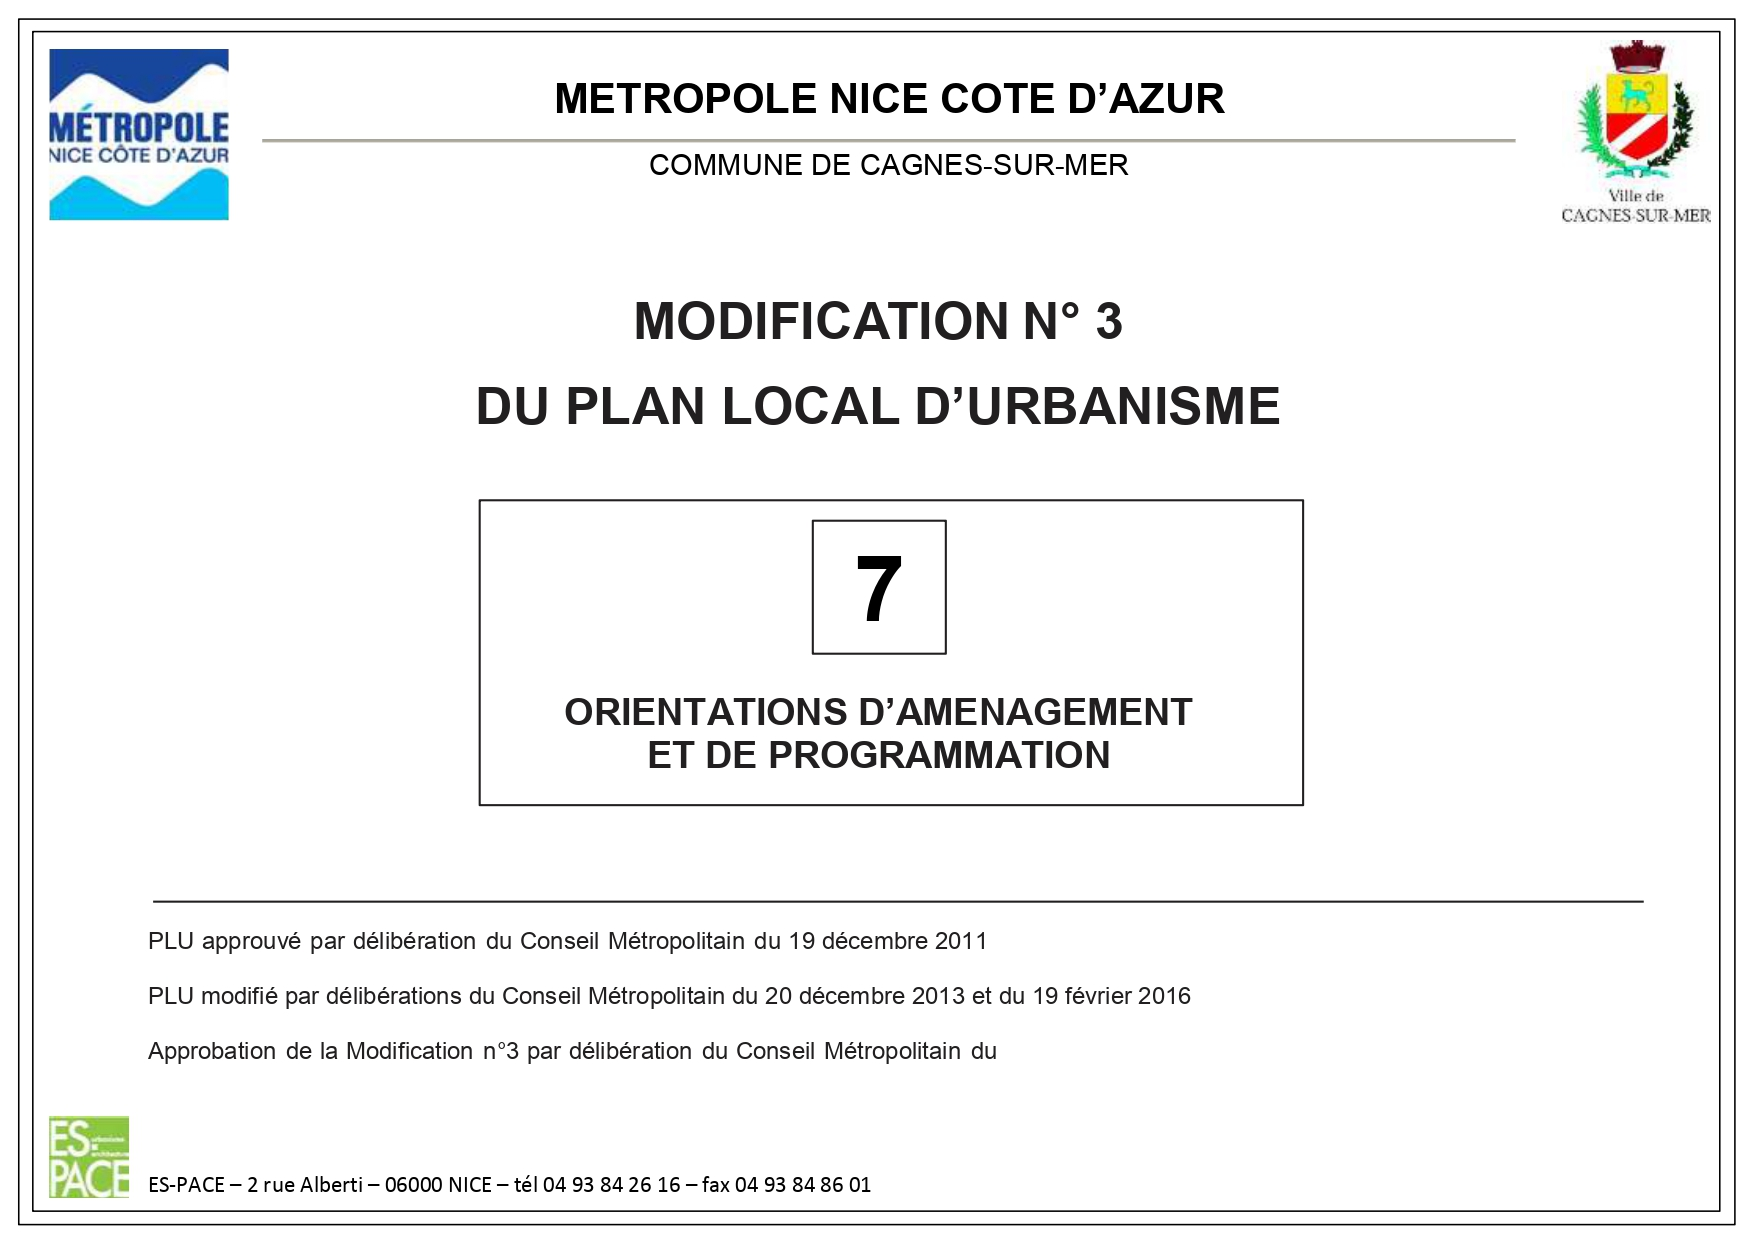 MODIFICATION N° 3 DU PLAN LOCAL D'URBANISME Cagnes sur mer